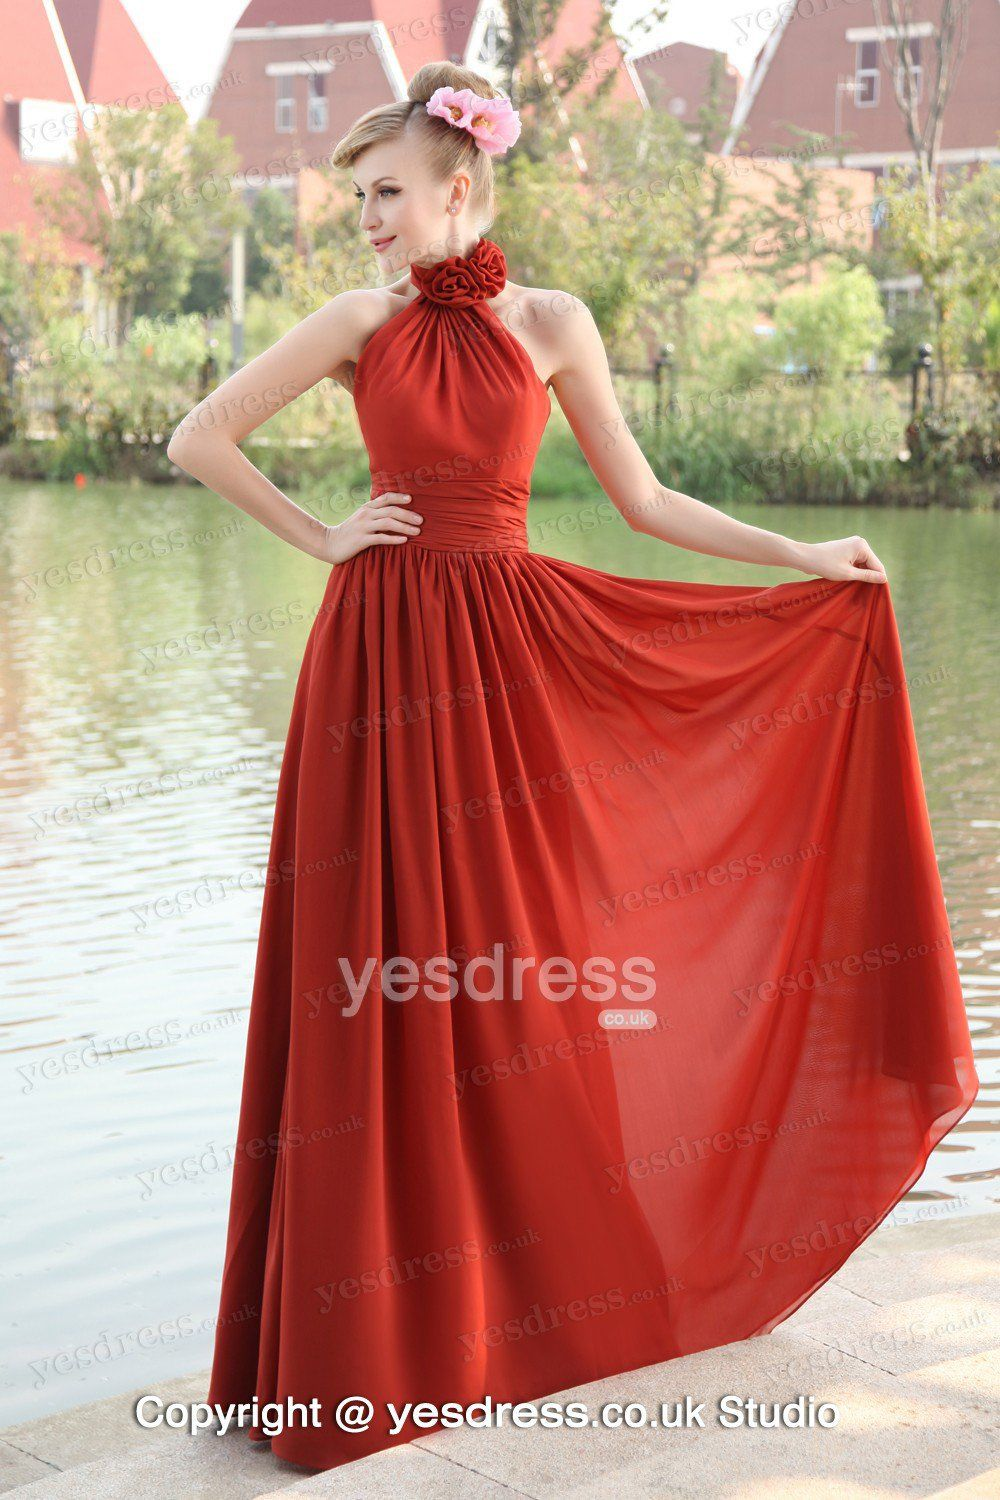 Yesbrides offers high quality retro dark red high neck